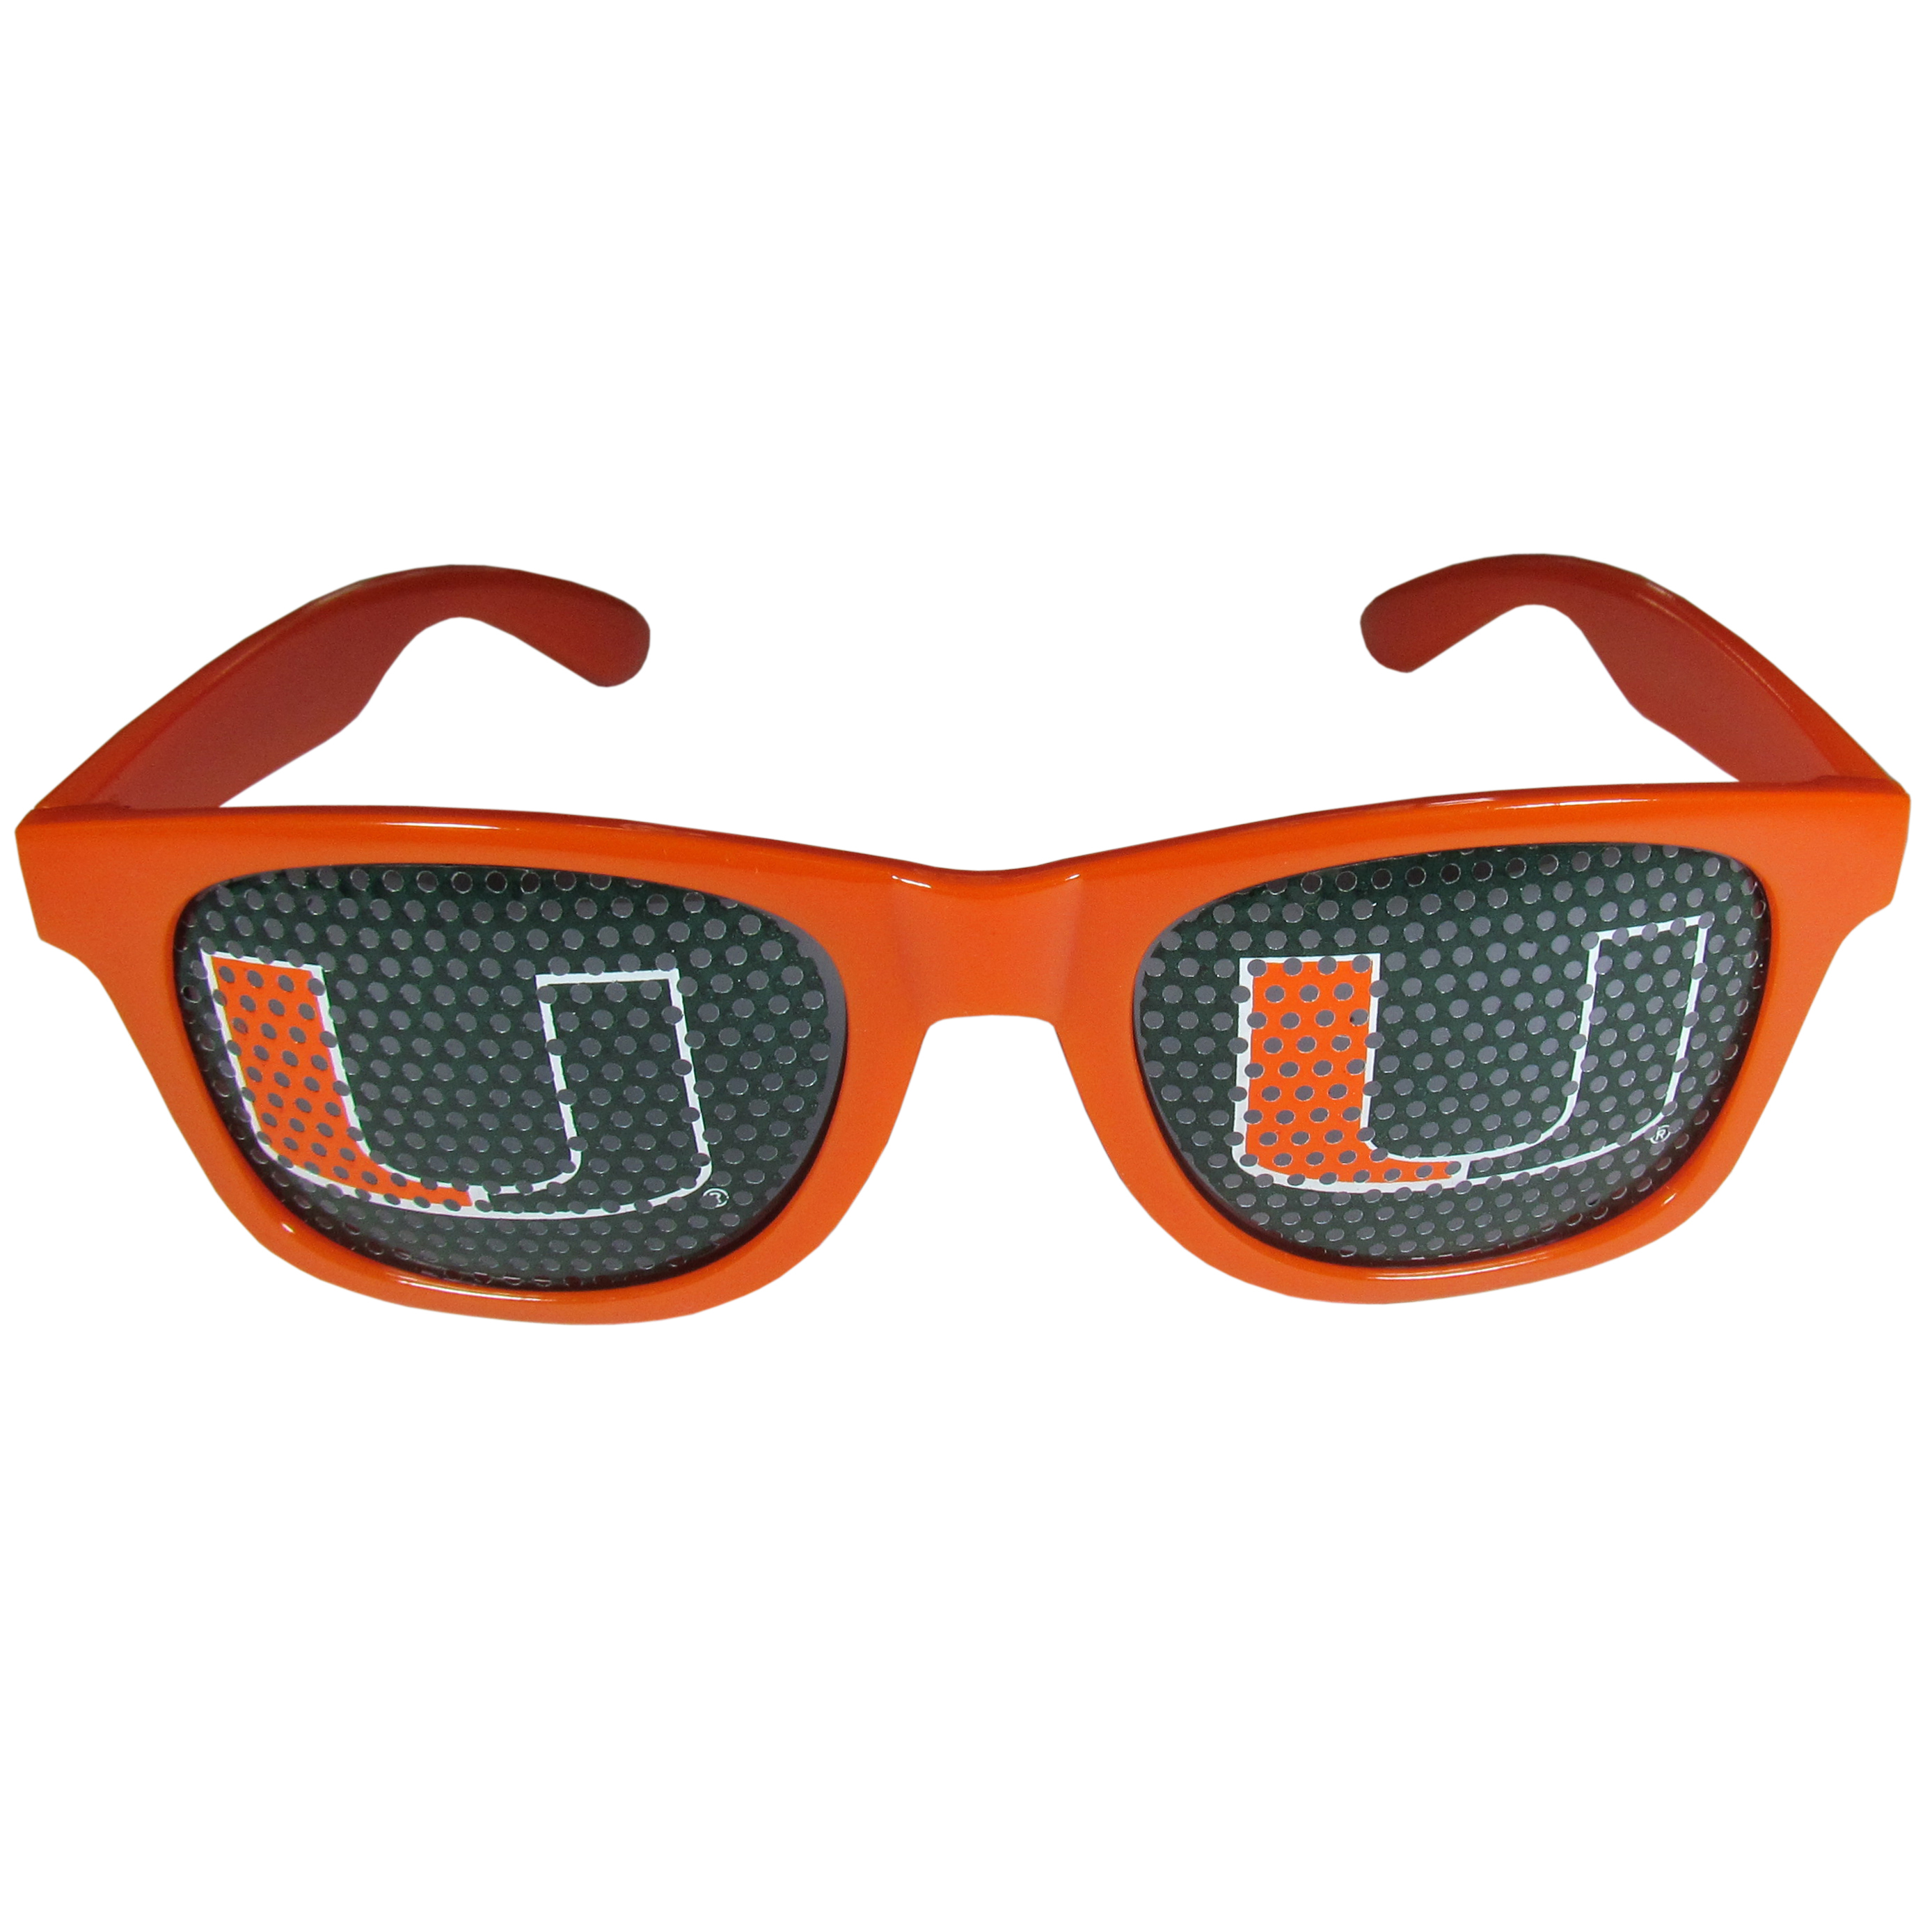 Miami Hurricanes Game Day Shades - Our officially licensed game day shades are the perfect accessory for the devoted Miami Hurricanes fan! The sunglasses have durable polycarbonate frames with flex hinges for comfort and damage resistance. The lenses feature brightly colored team clings that are perforated for visibility.